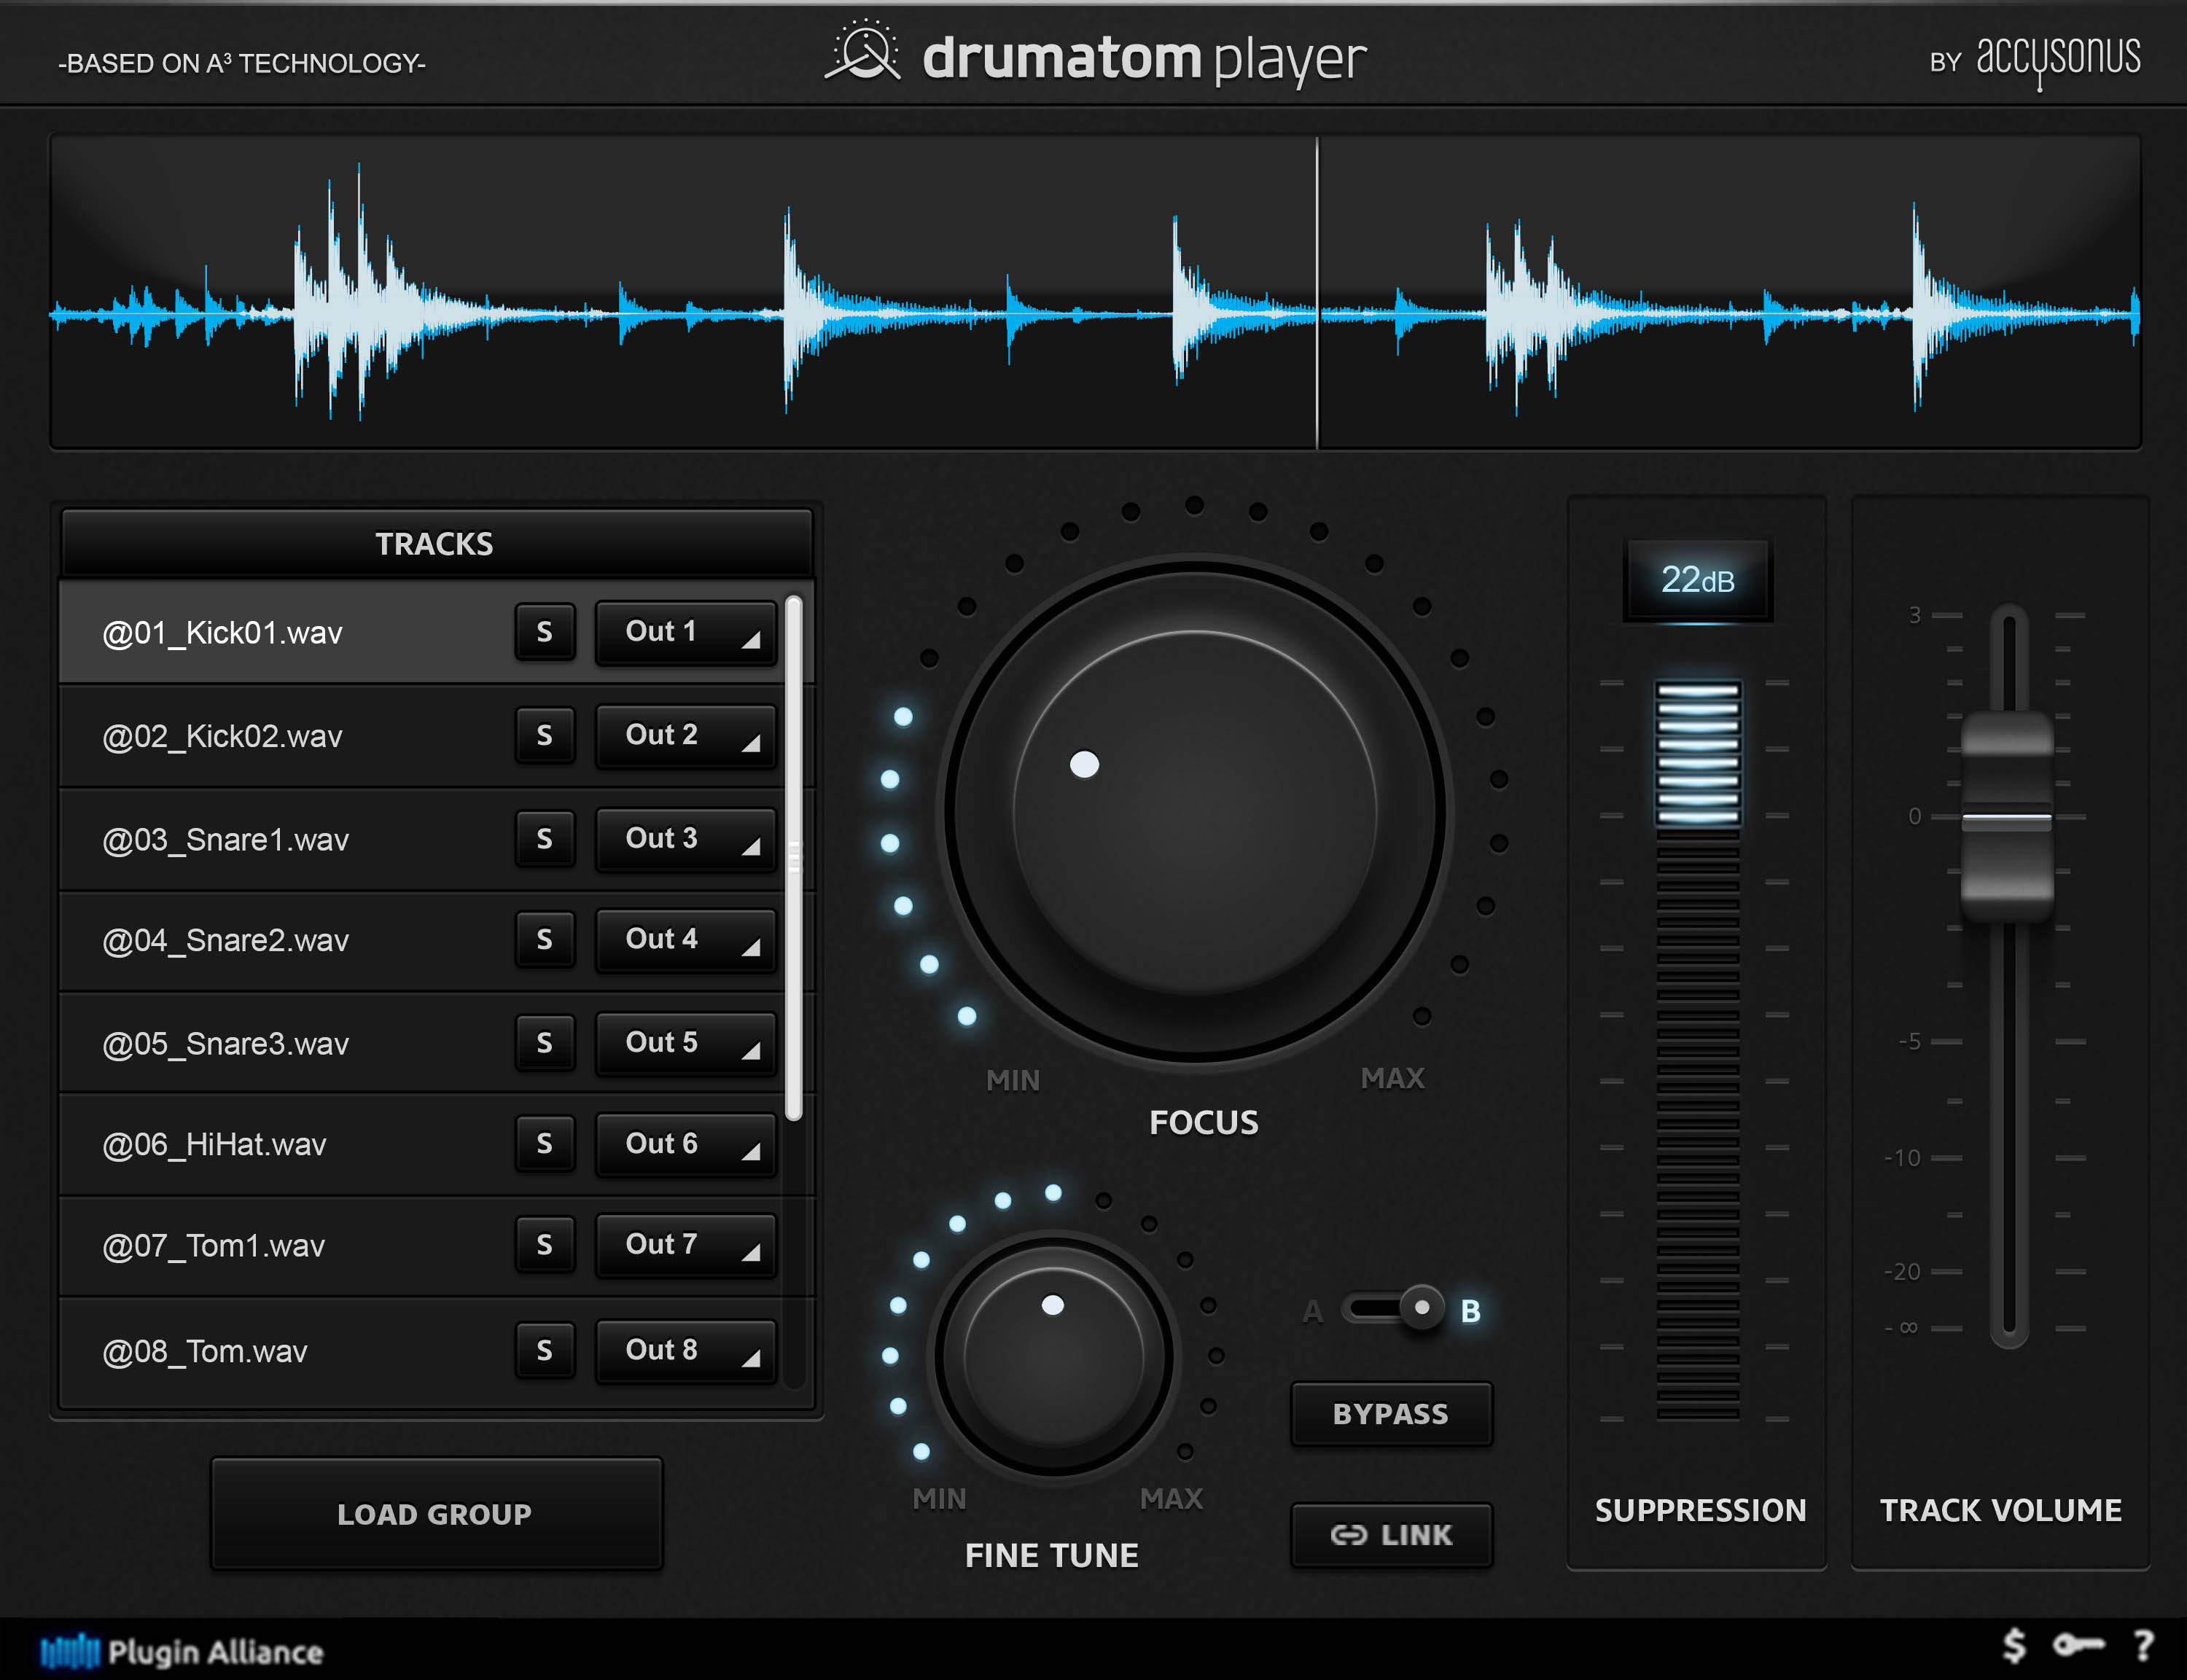 accusonus drumatom player plugin